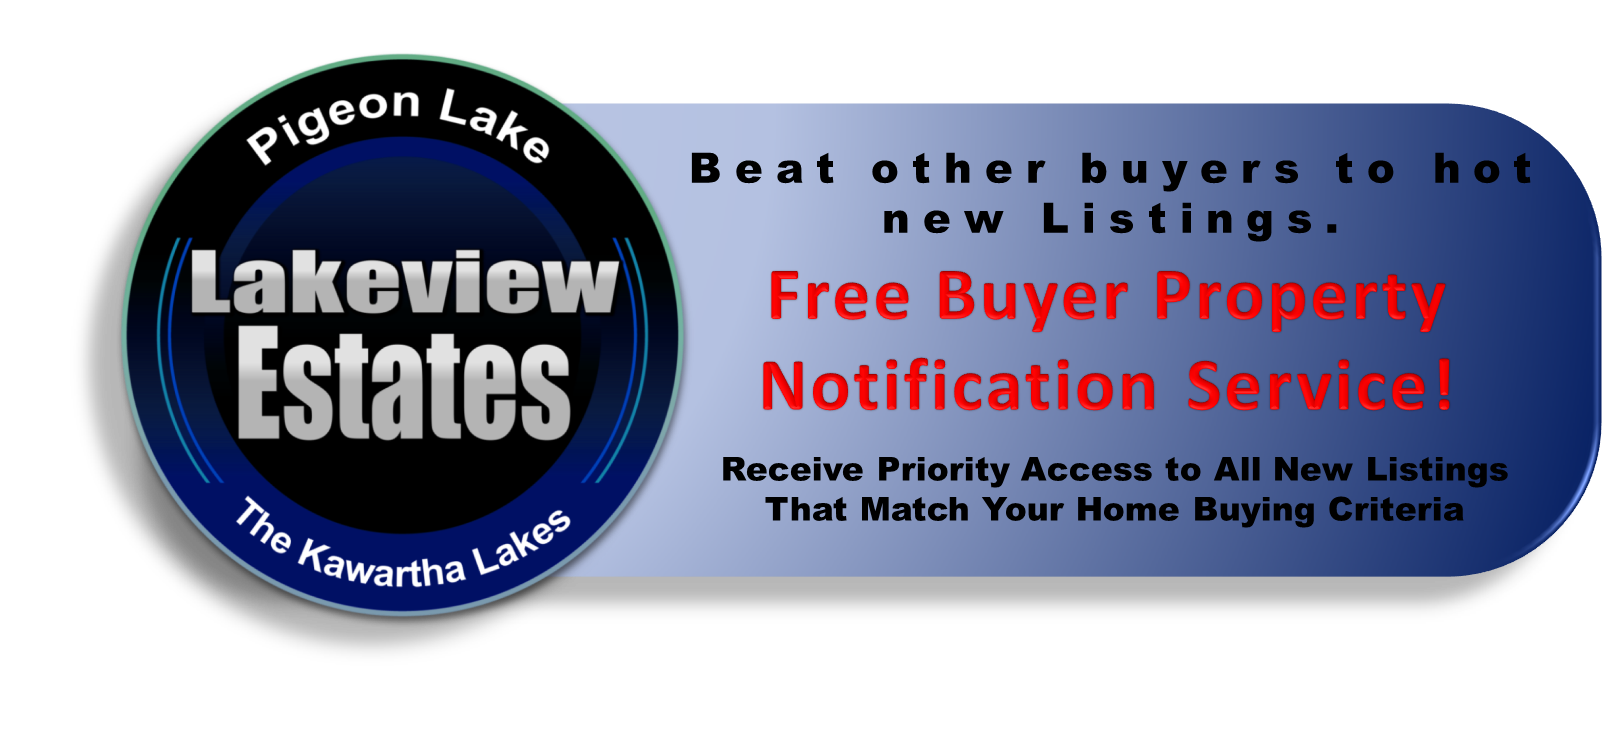 Lakeview Estates Real Estate Buyers VIP Property Notification Service